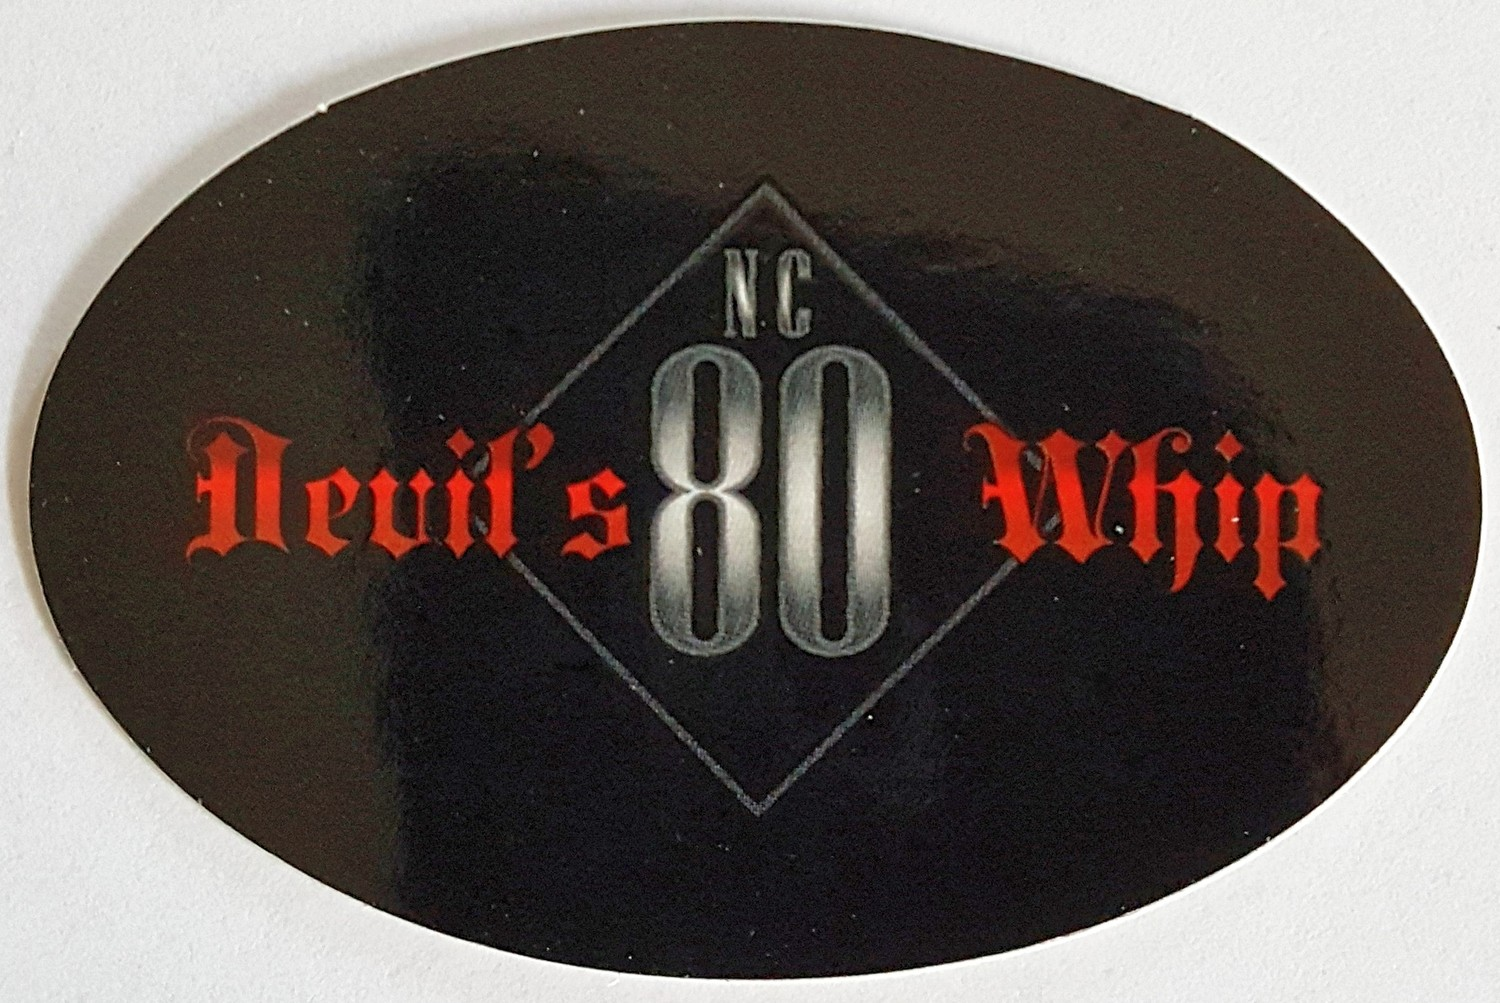 NC 80 Devil's Whip Text Oval Sticker - FREE SHIPPING!